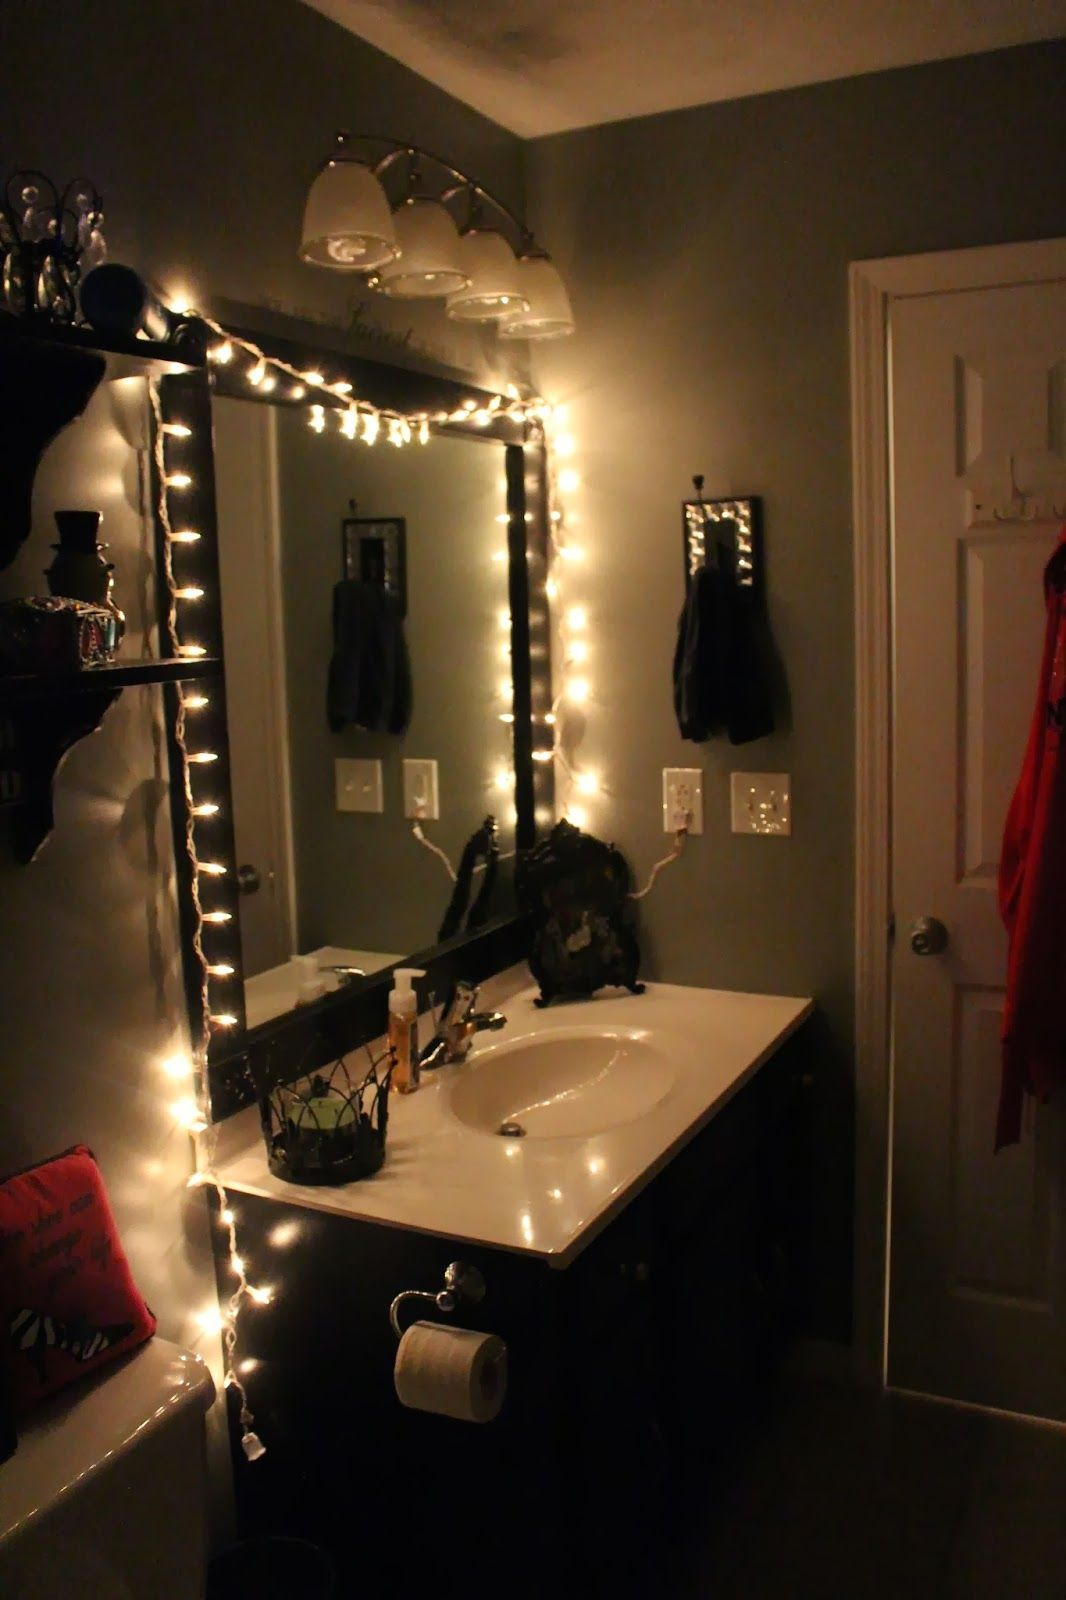 Bathroom Rennovation Black And White Christmas Lights Womens Sparkle Sparkles How Apartment Decorating Rental Diy Small Apartment College Apartment Decor